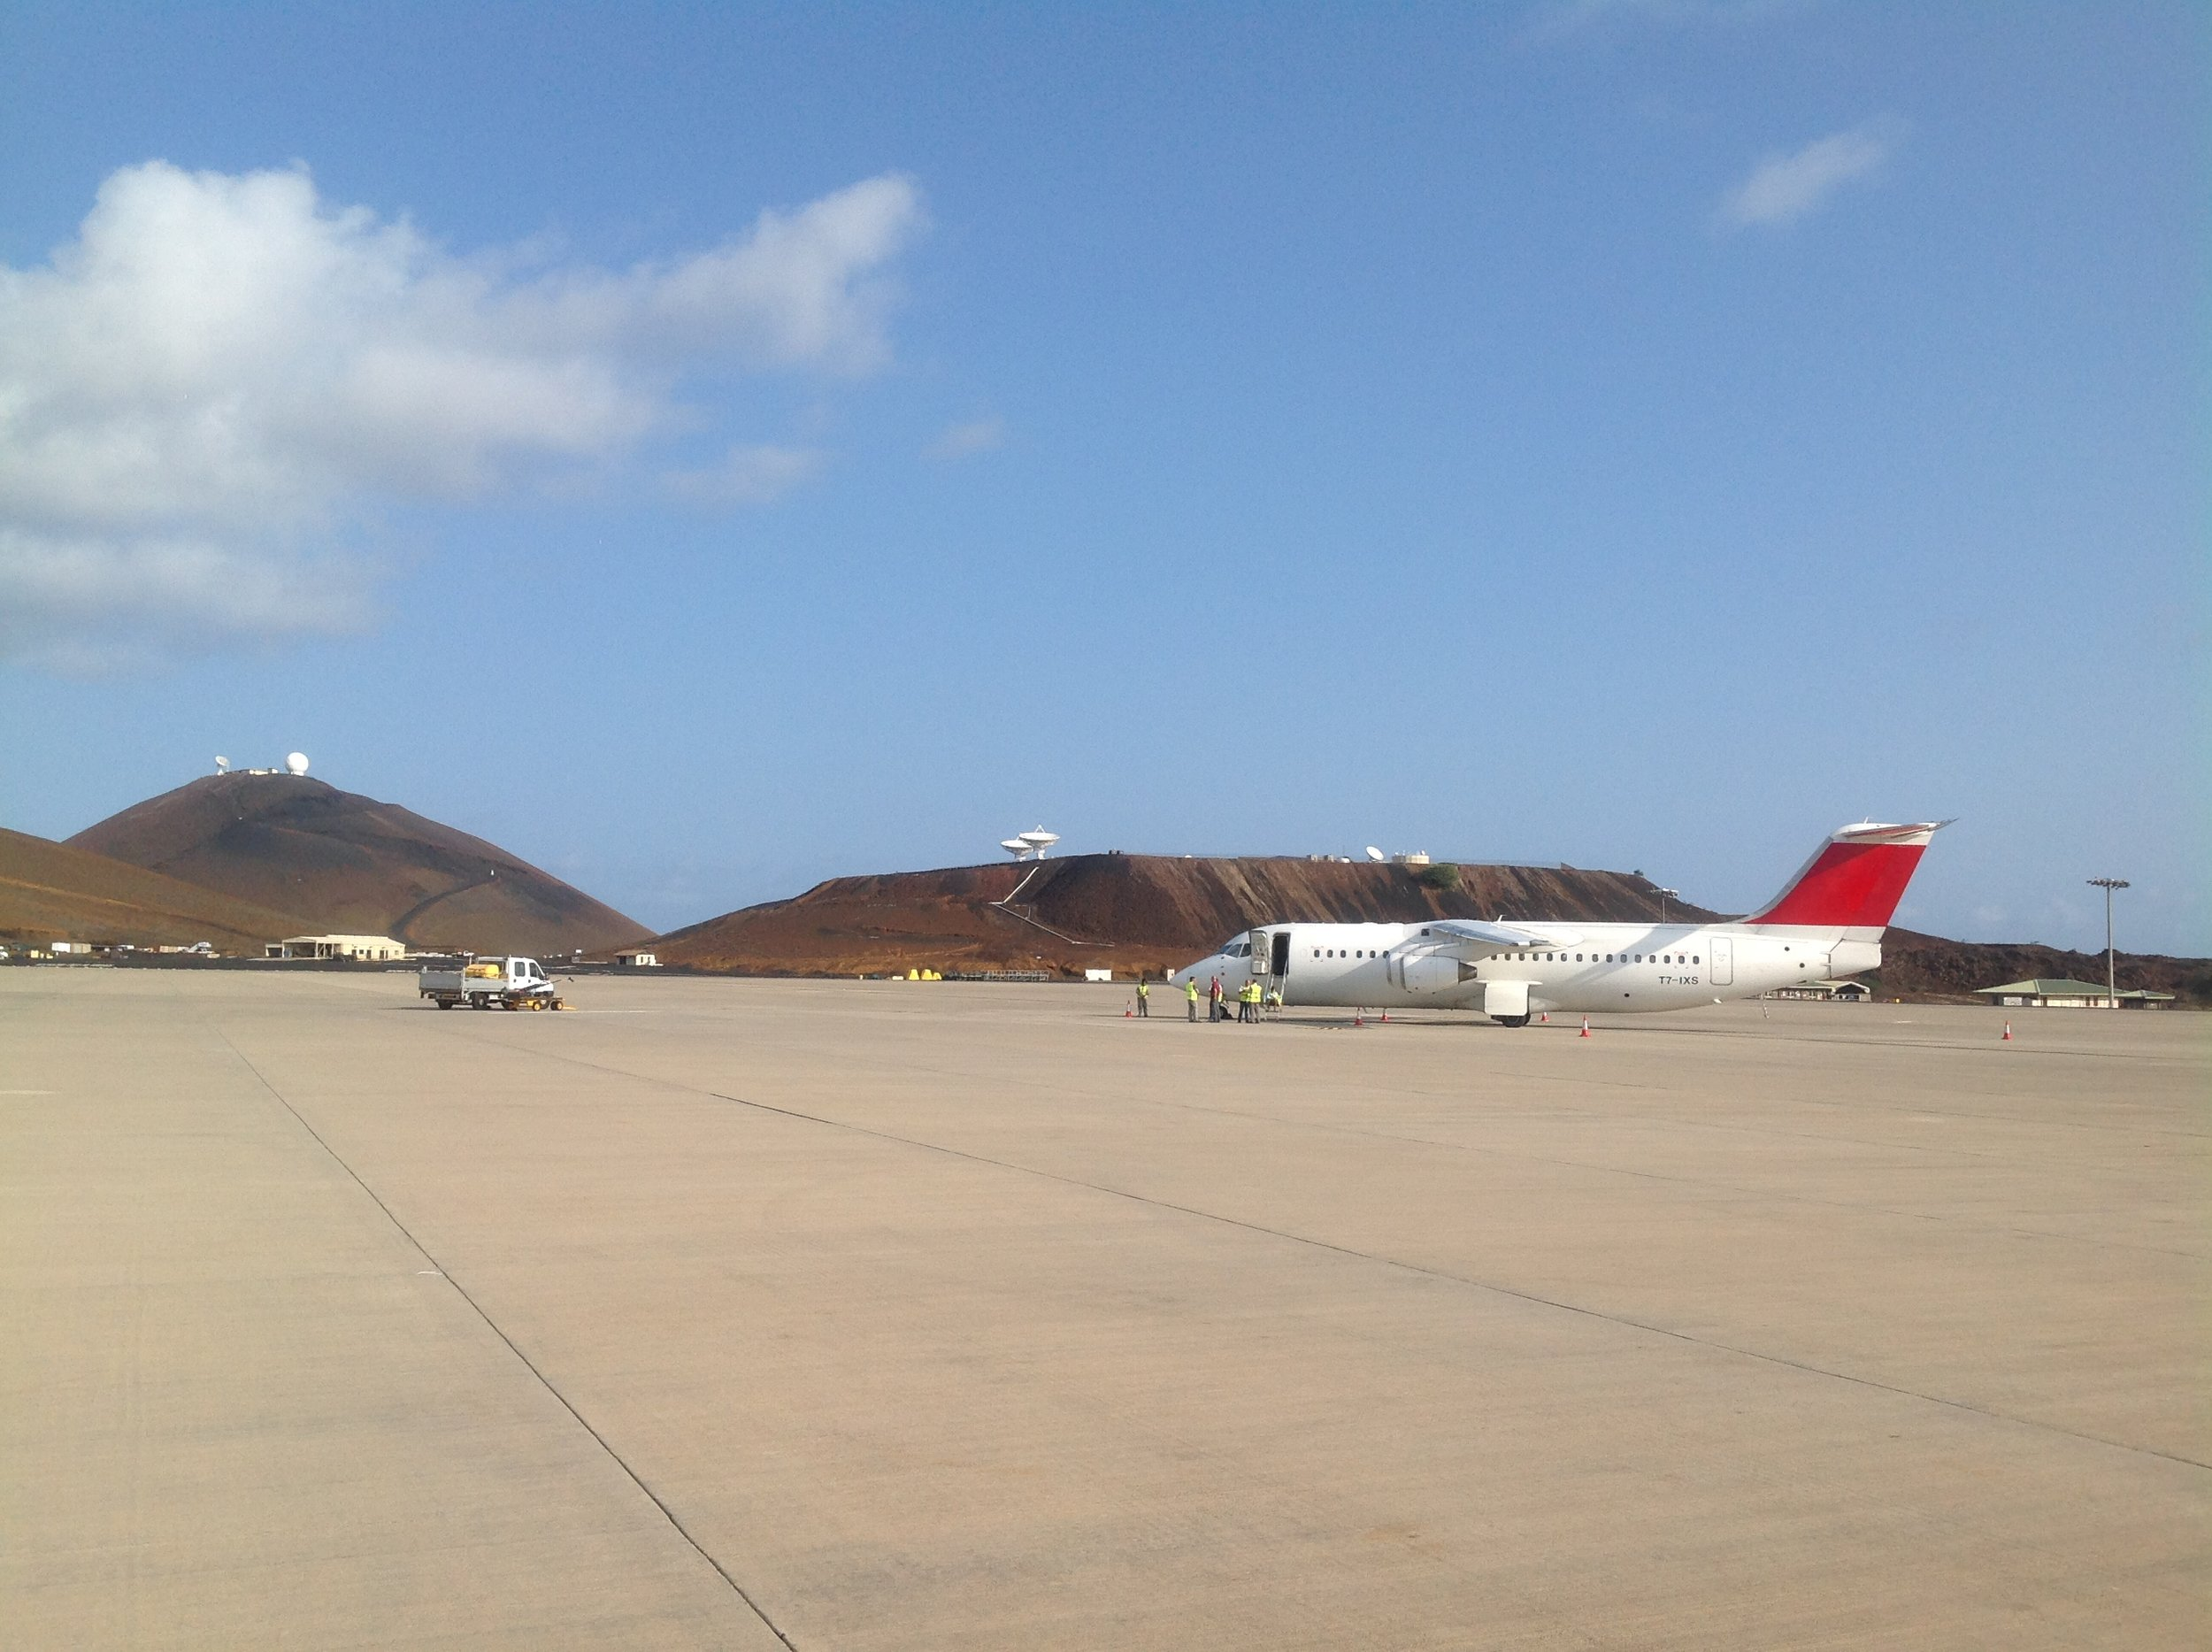 The Avro RJ100 during its stopover at Ascension Island